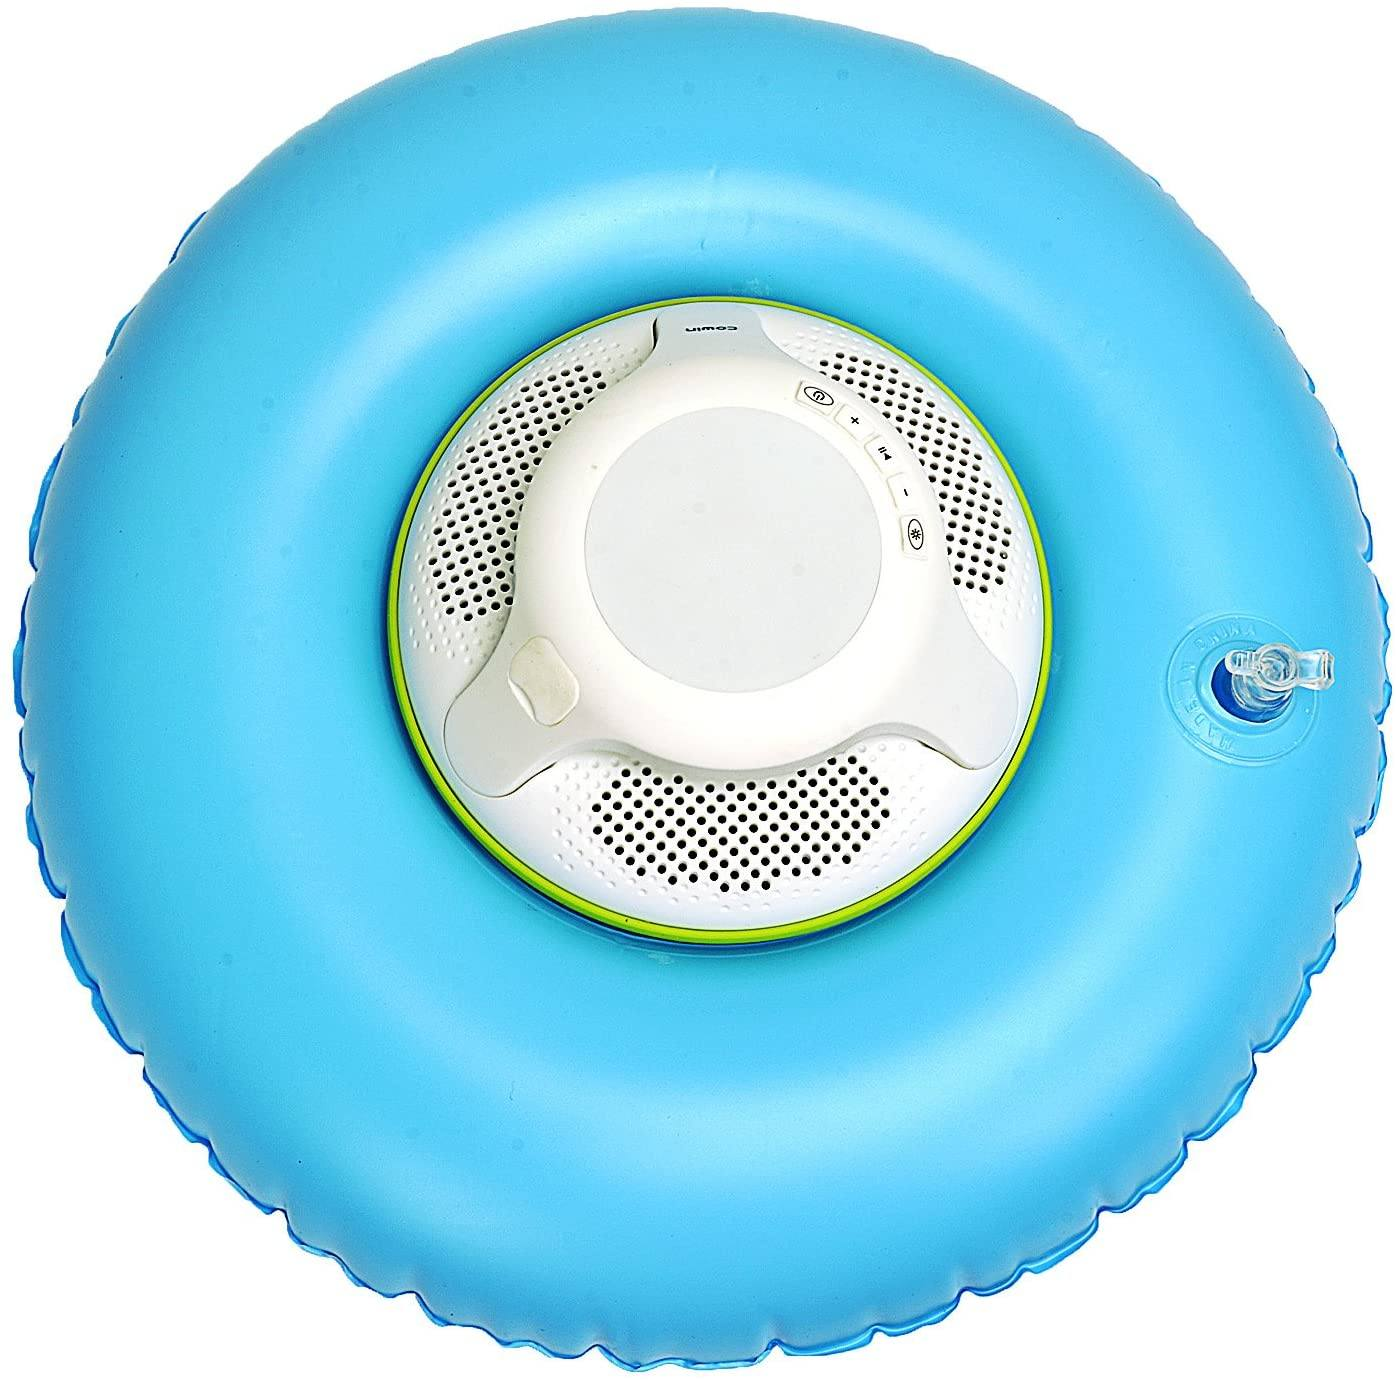 Cowin Float Small Swin Ring bakeng sa Cowin Swimmer Floating Waterproof IPX7 Bluetooth Spika Cowinaudio